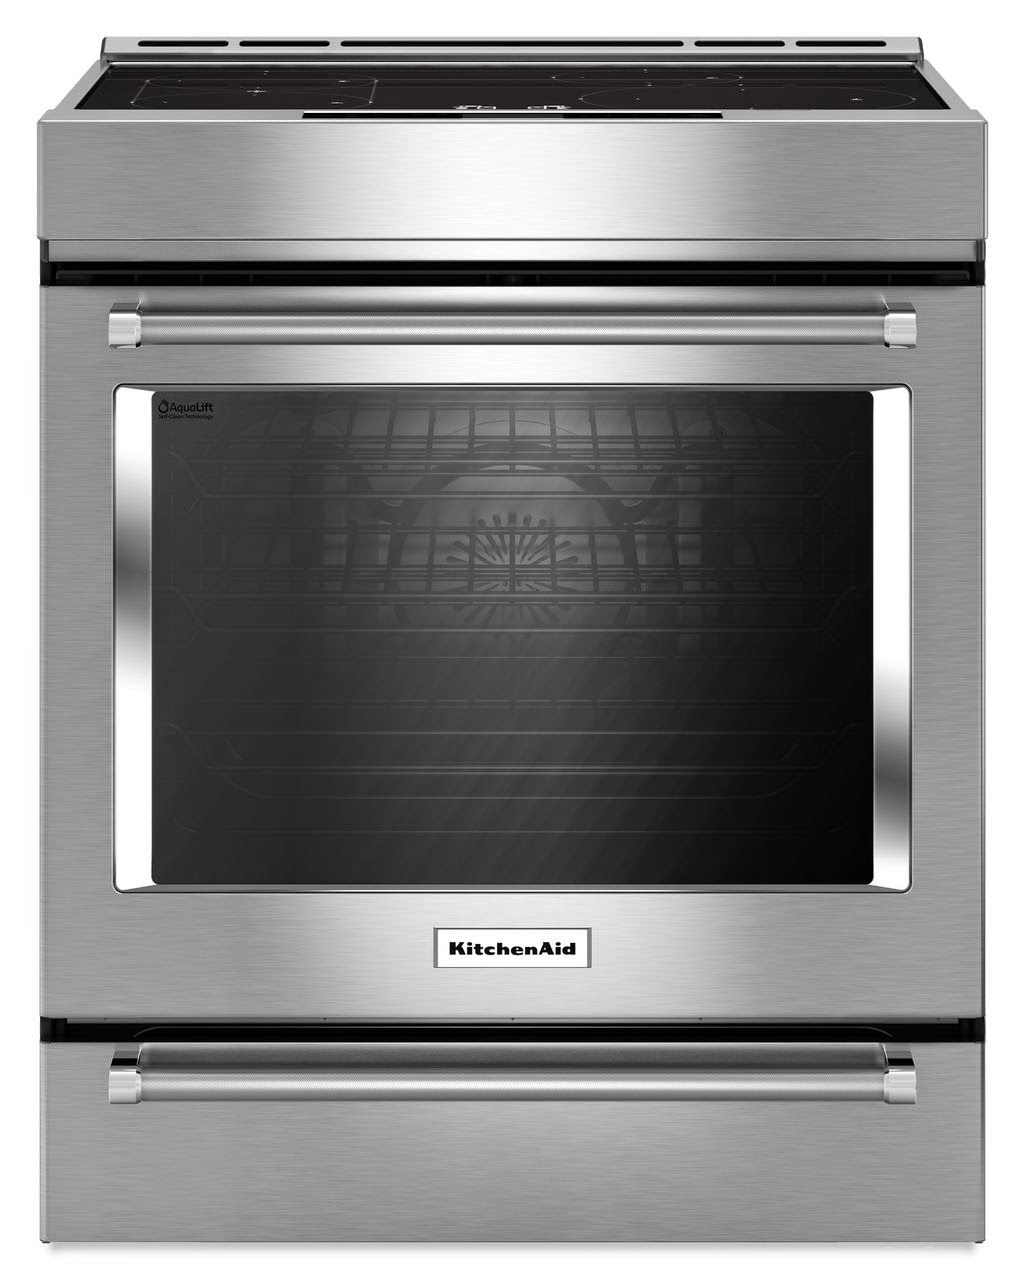 Kitchenaid Appliances 2015 2015 Kitchenaid Induction Range  Informative Kitchen Appliance